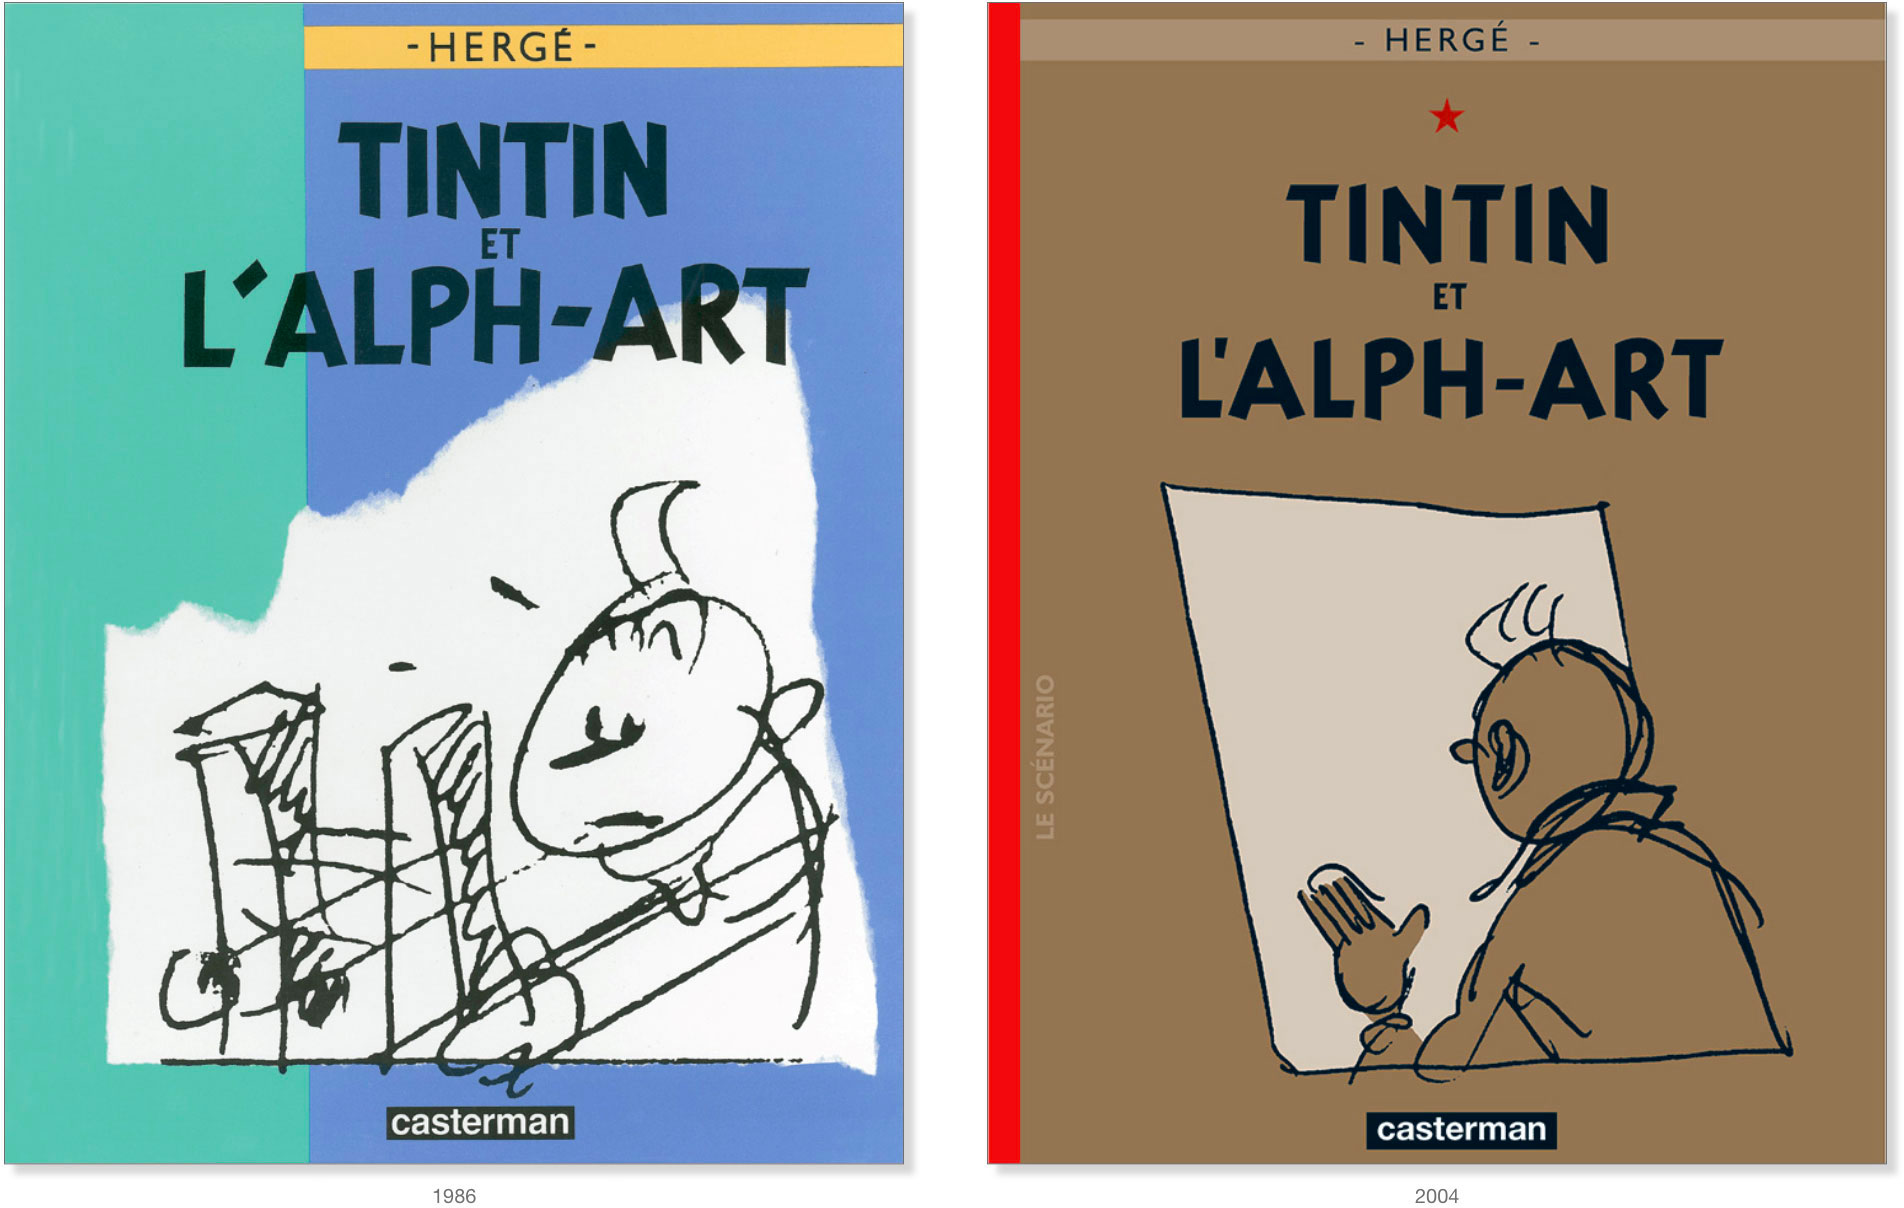 Tintin and Alph-Art covers